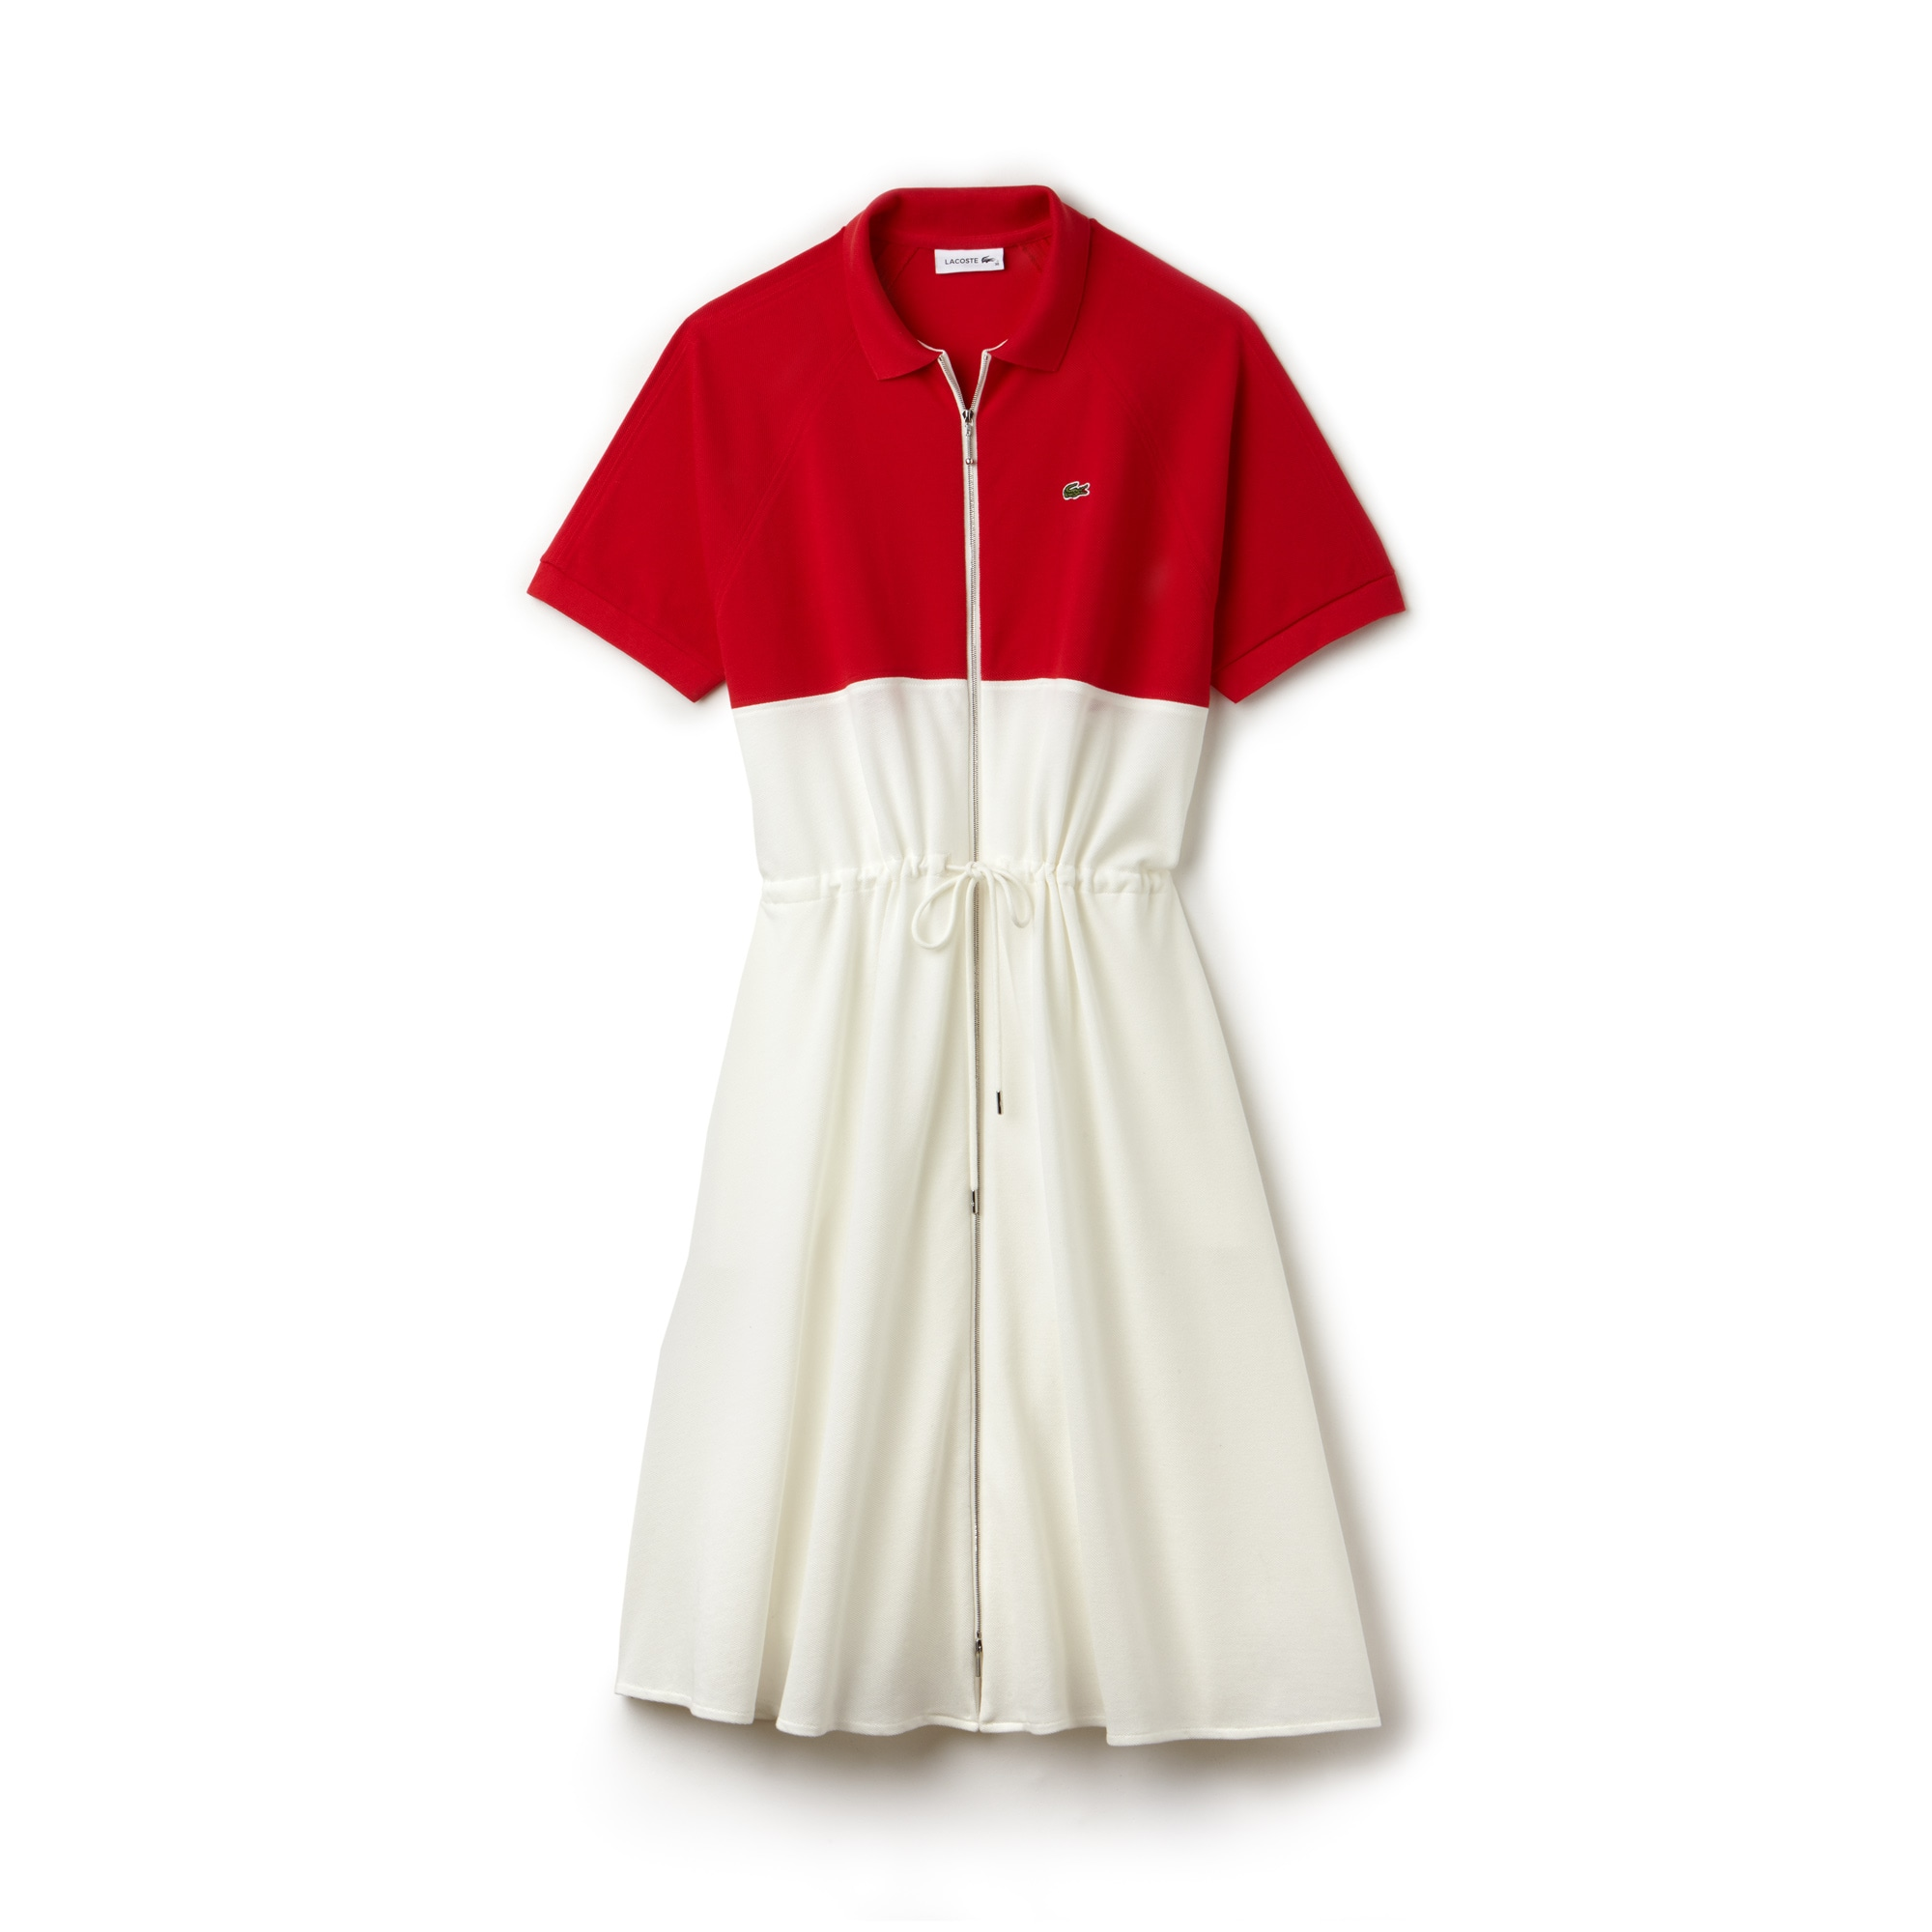 Women's Lacoste Zip Colorblock Cotton Petit Piqué Polo Dress